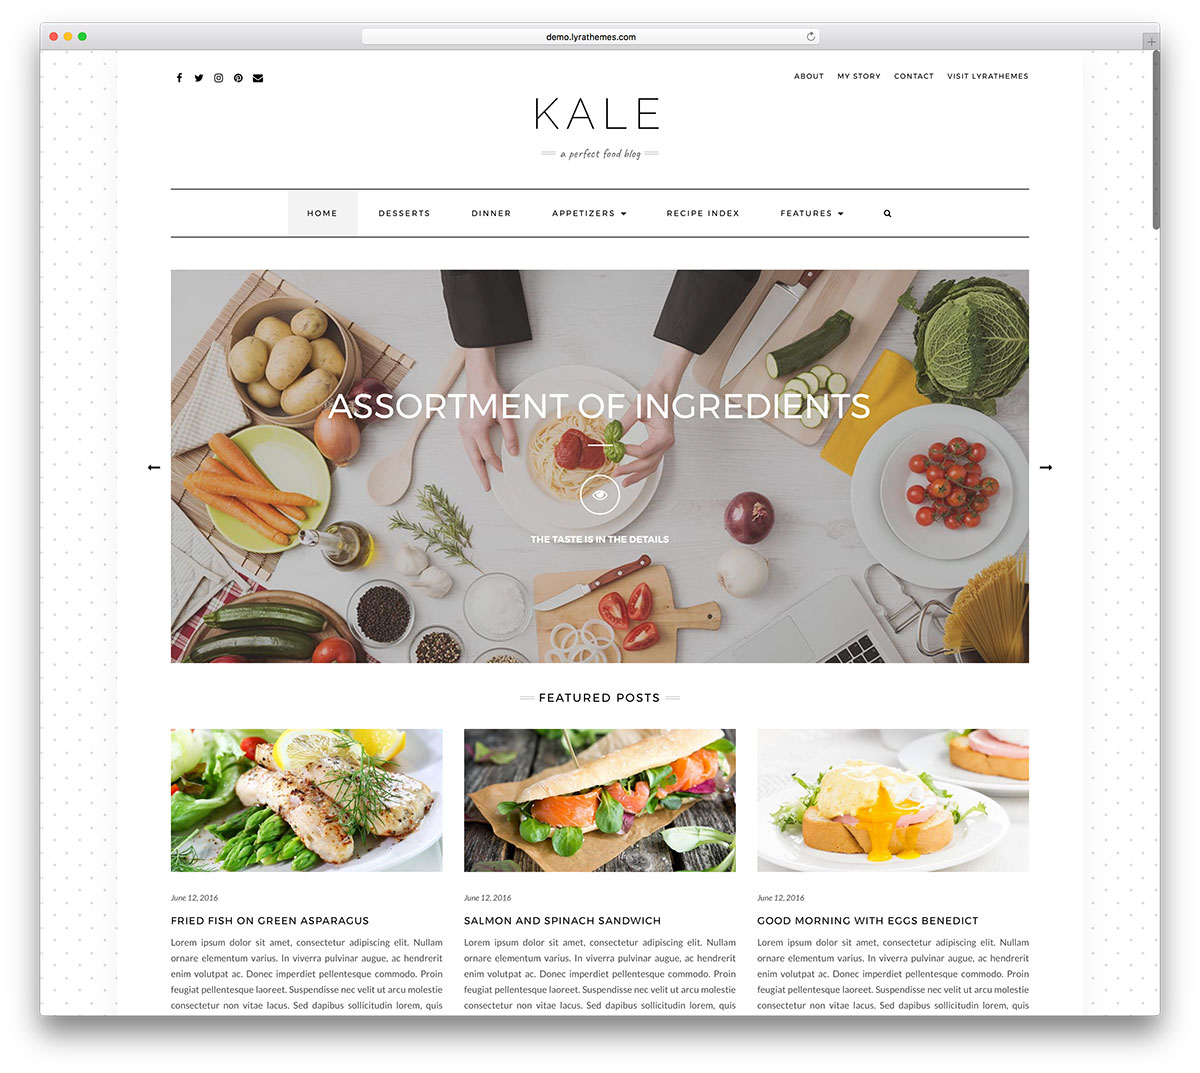 25 awesome food wordpress themes to share recipes 2018 colorlib kale is a clean and responsive wordpress food and personal blog website theme this theme is a pliable toolbox for creating expressive modern blogs forumfinder Images